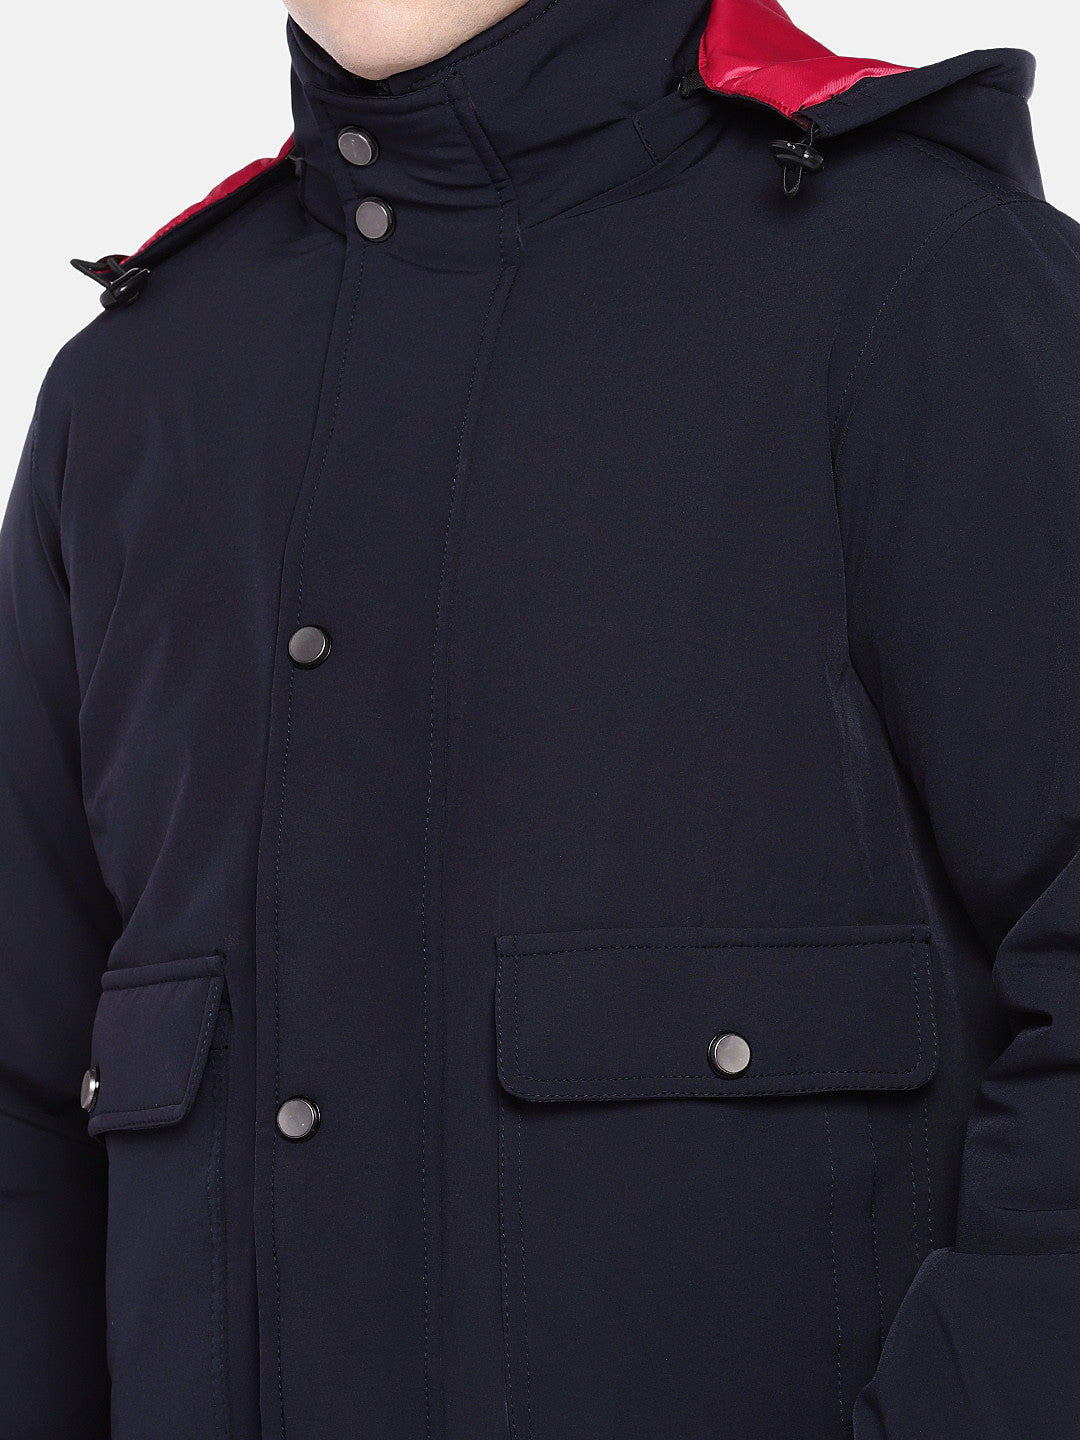 Navy Blue Solid Sporty Jacket-5